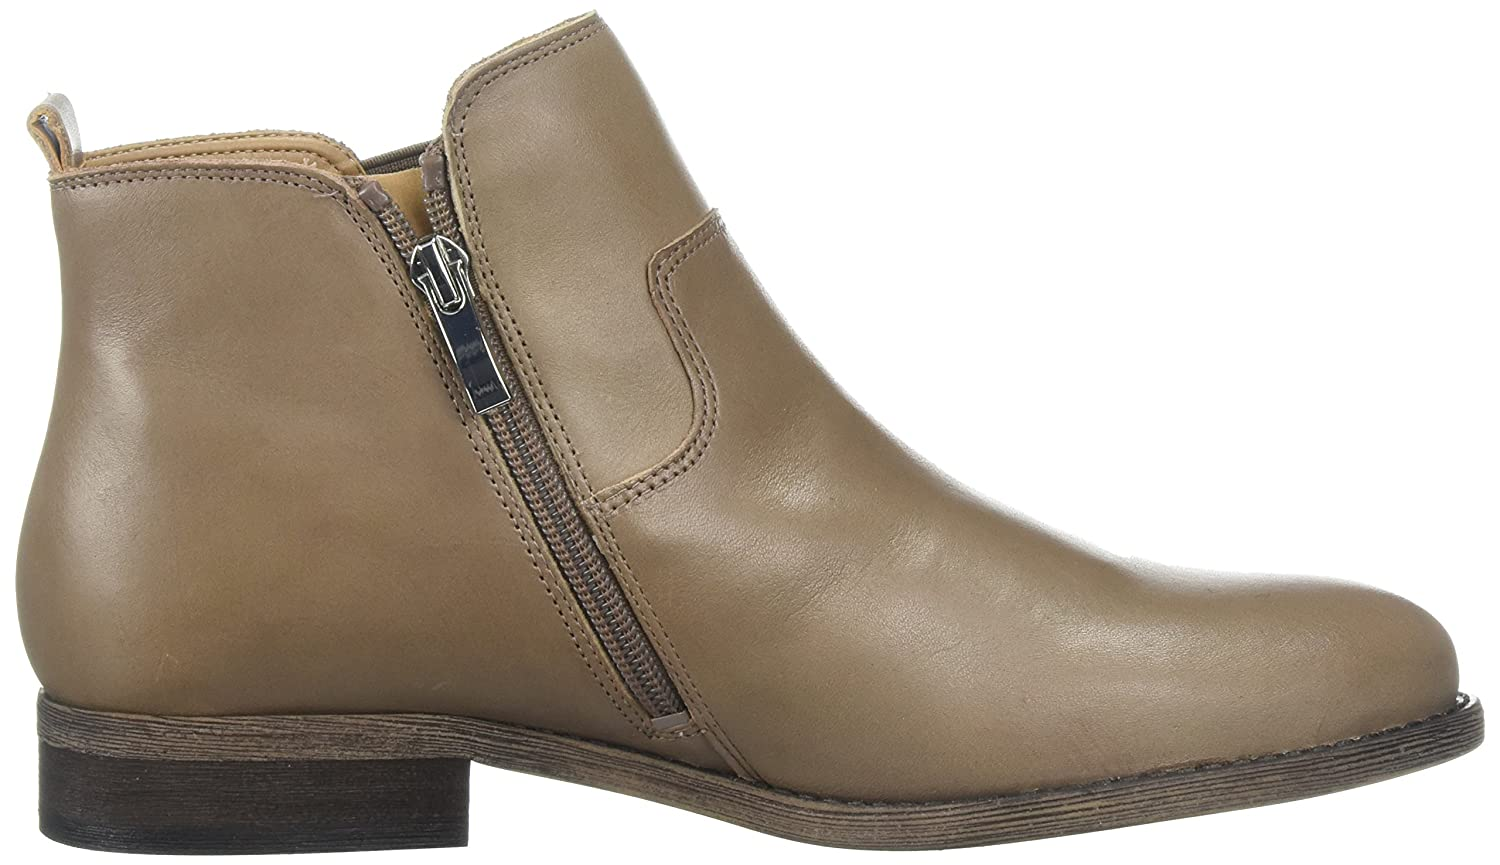 Franco Sarto Women's Hampton Ankle Boot B073H6WPX8 10.5 B(M) US|Dover Taupe